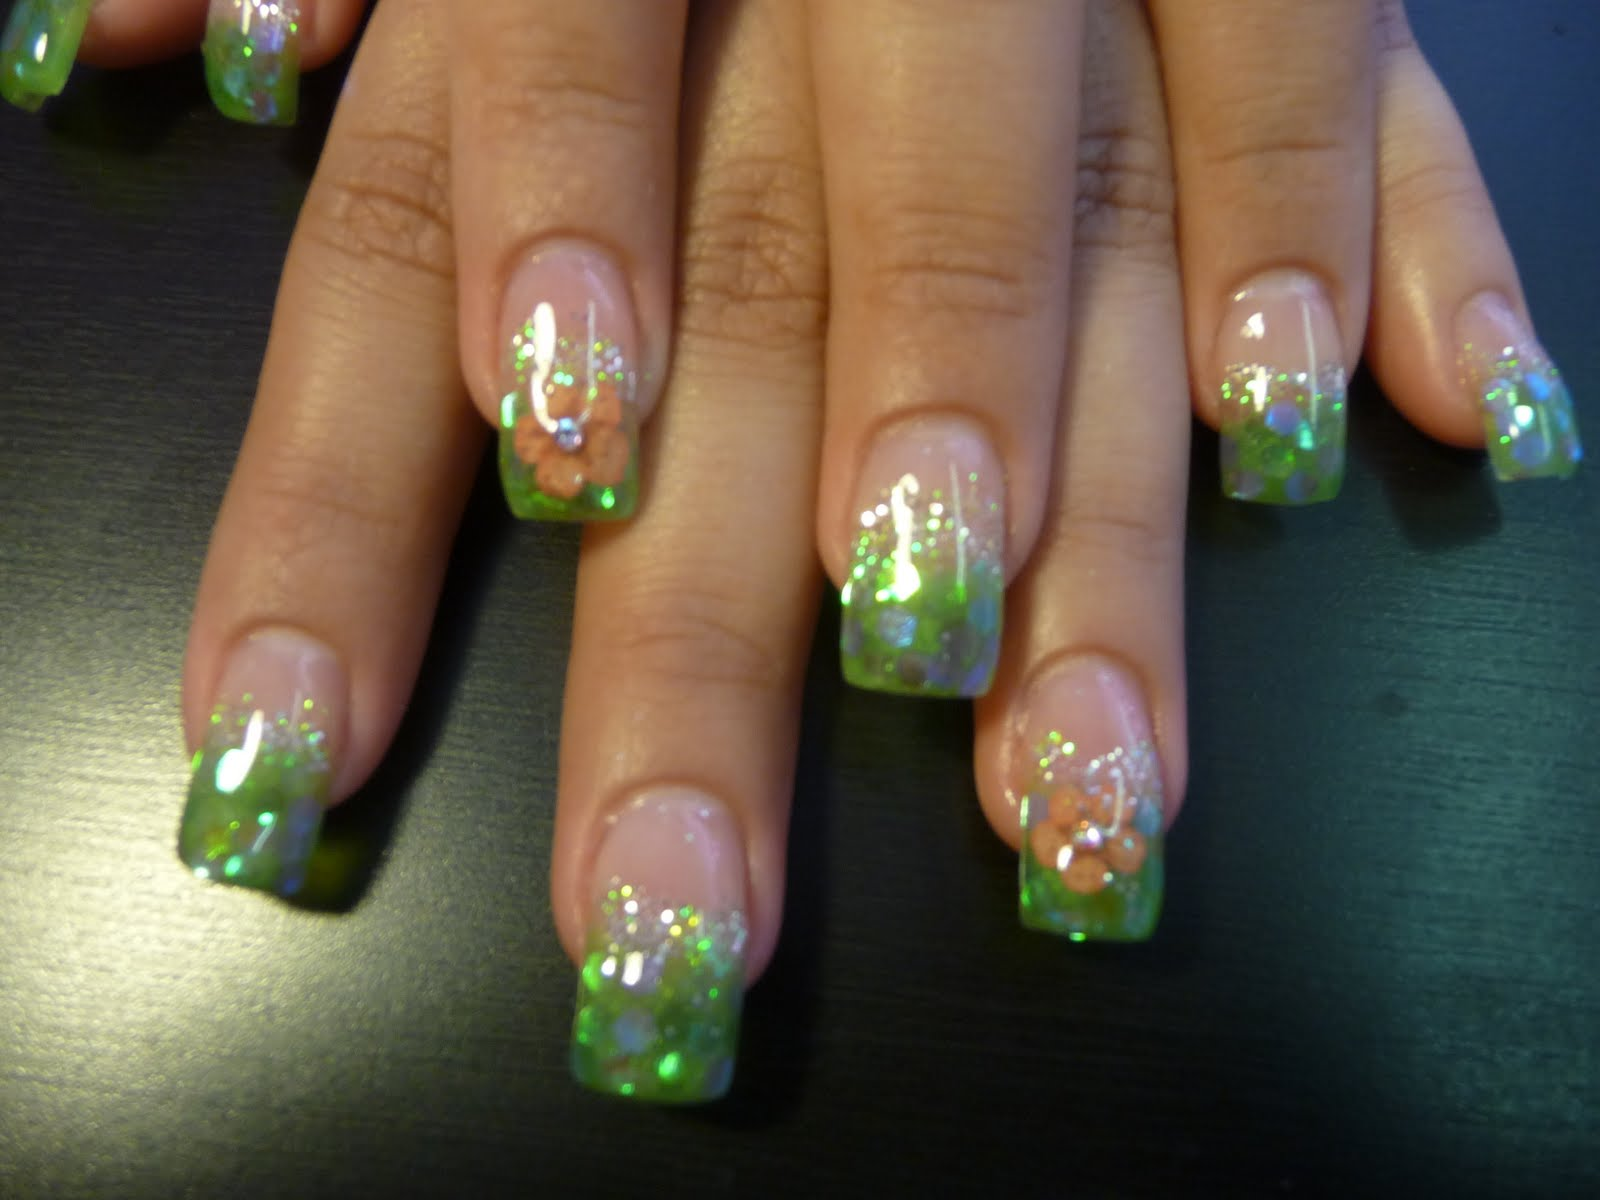 Natural Nails & gels By Alex: Green Tip Gel nails